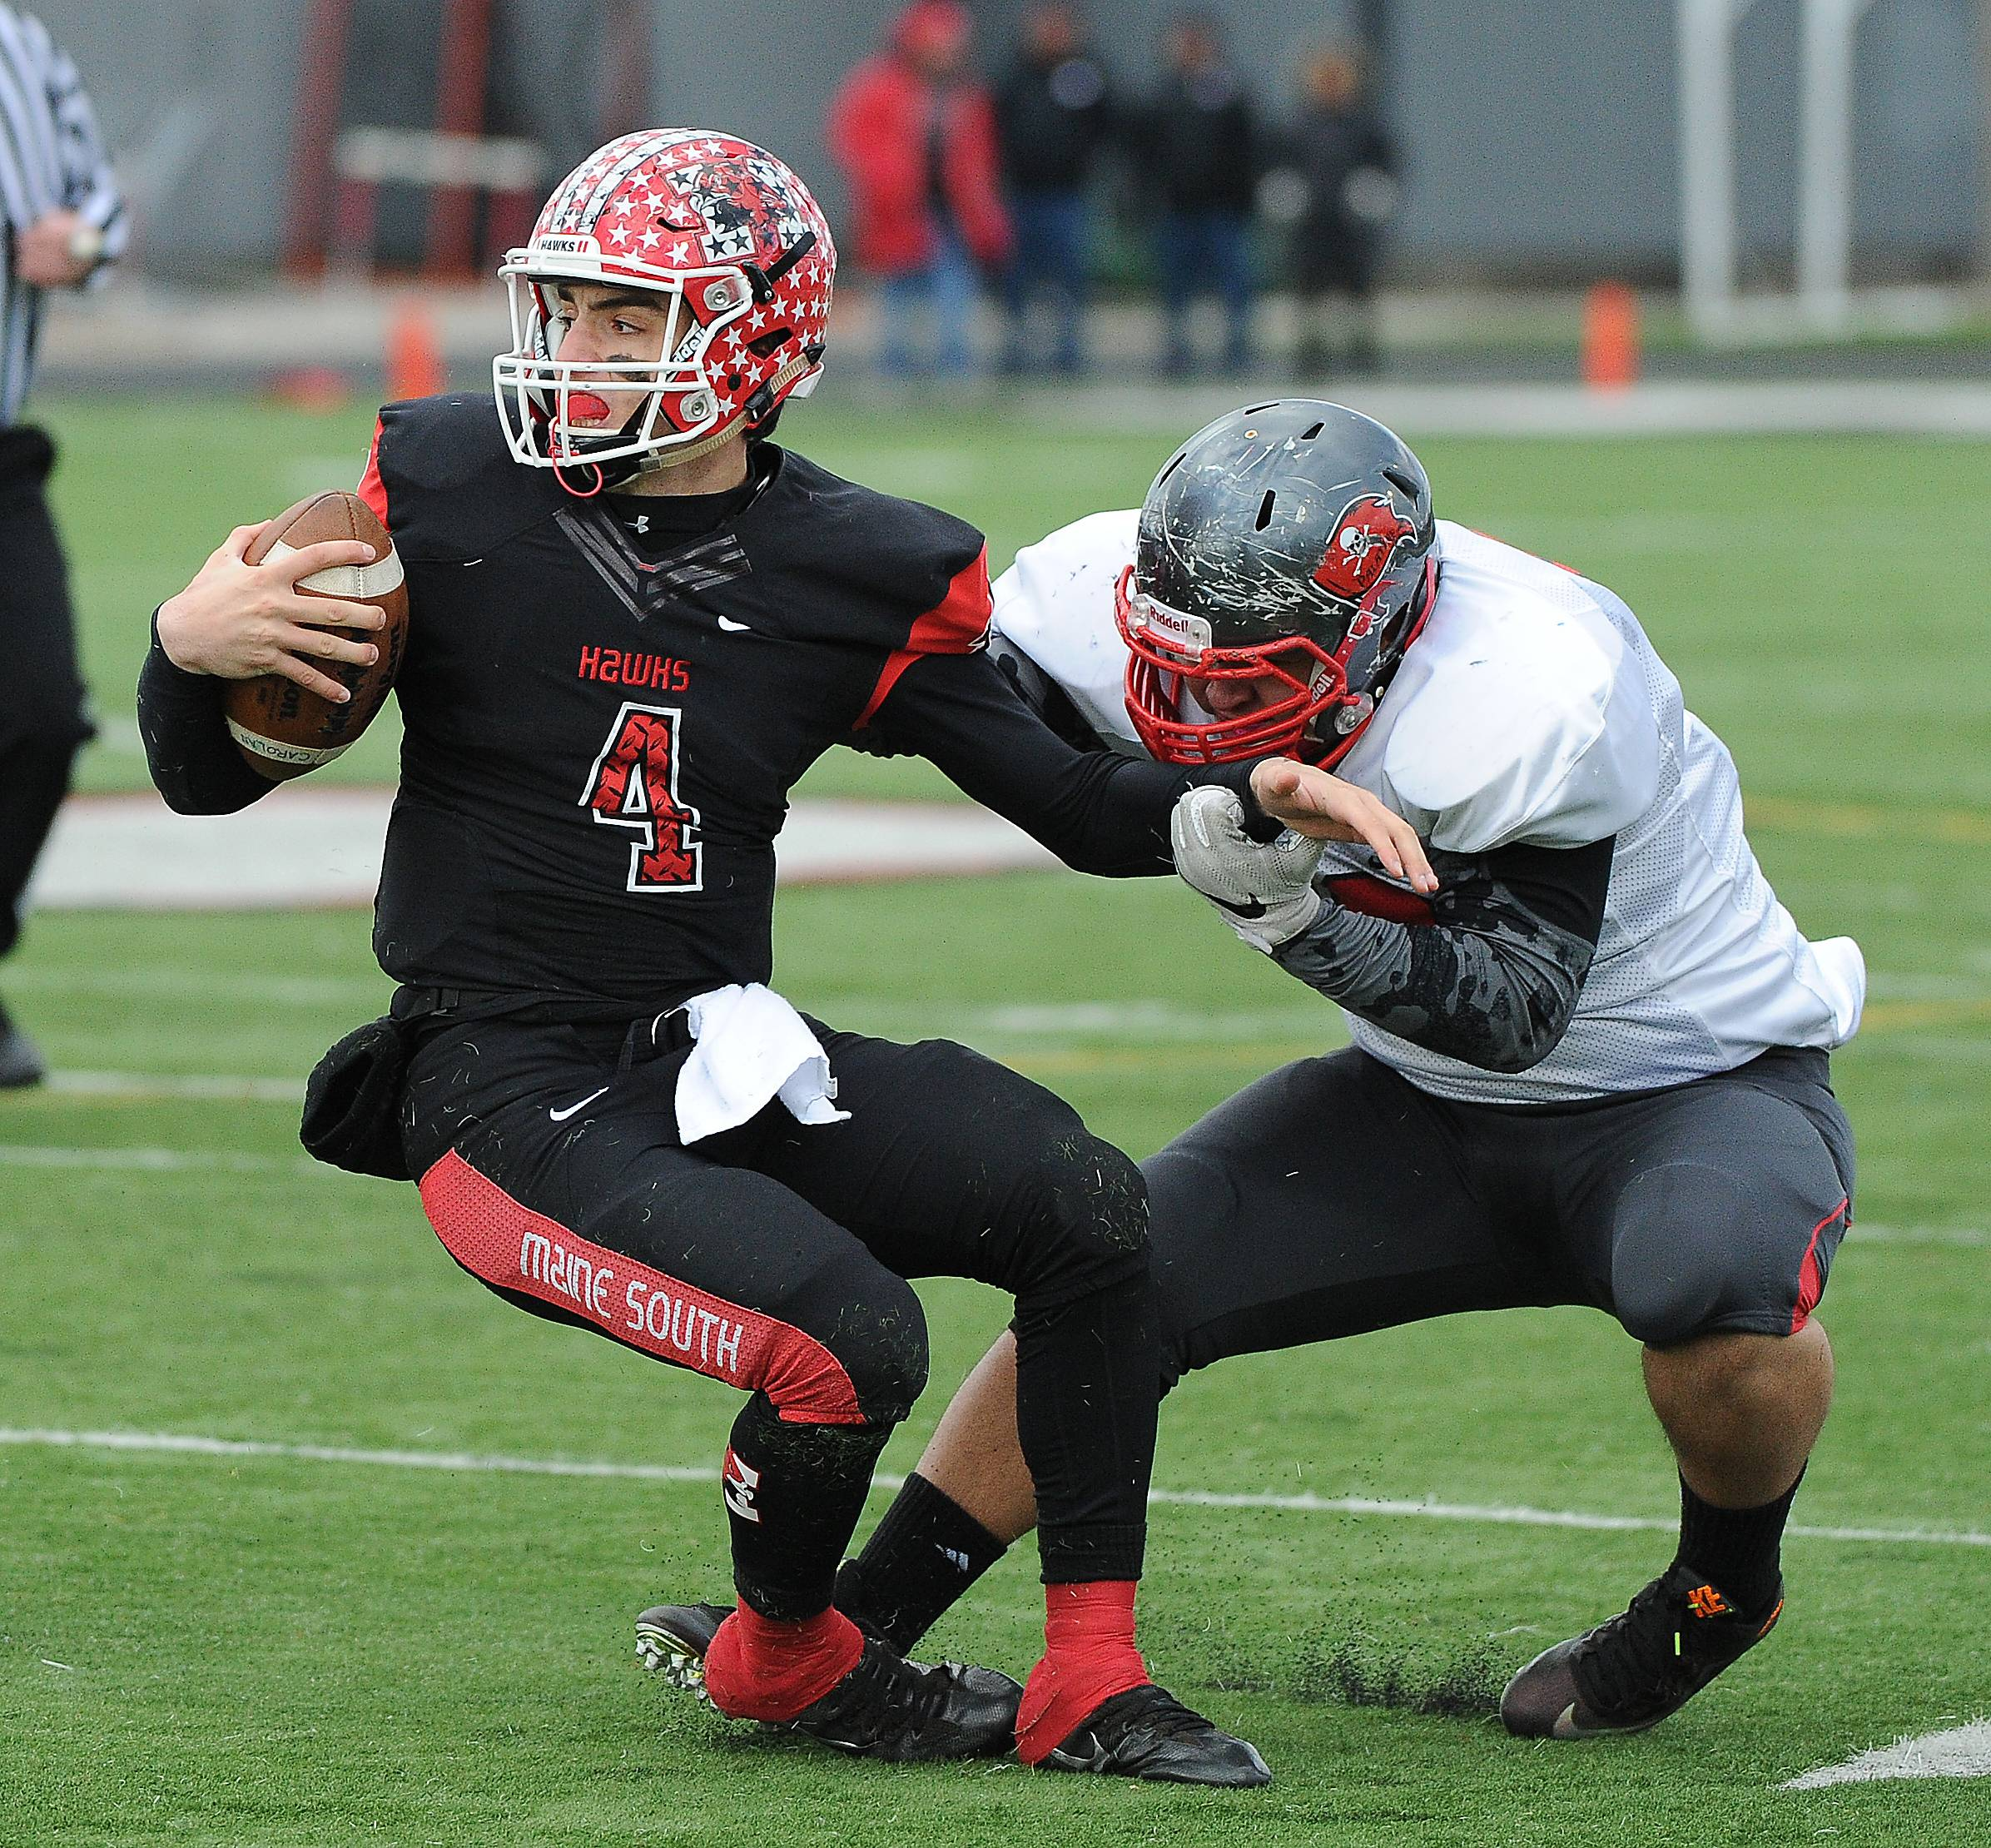 Palatine's defense tries to contain Maine South quarterback Nick Leongas in the first quarter on Saturday